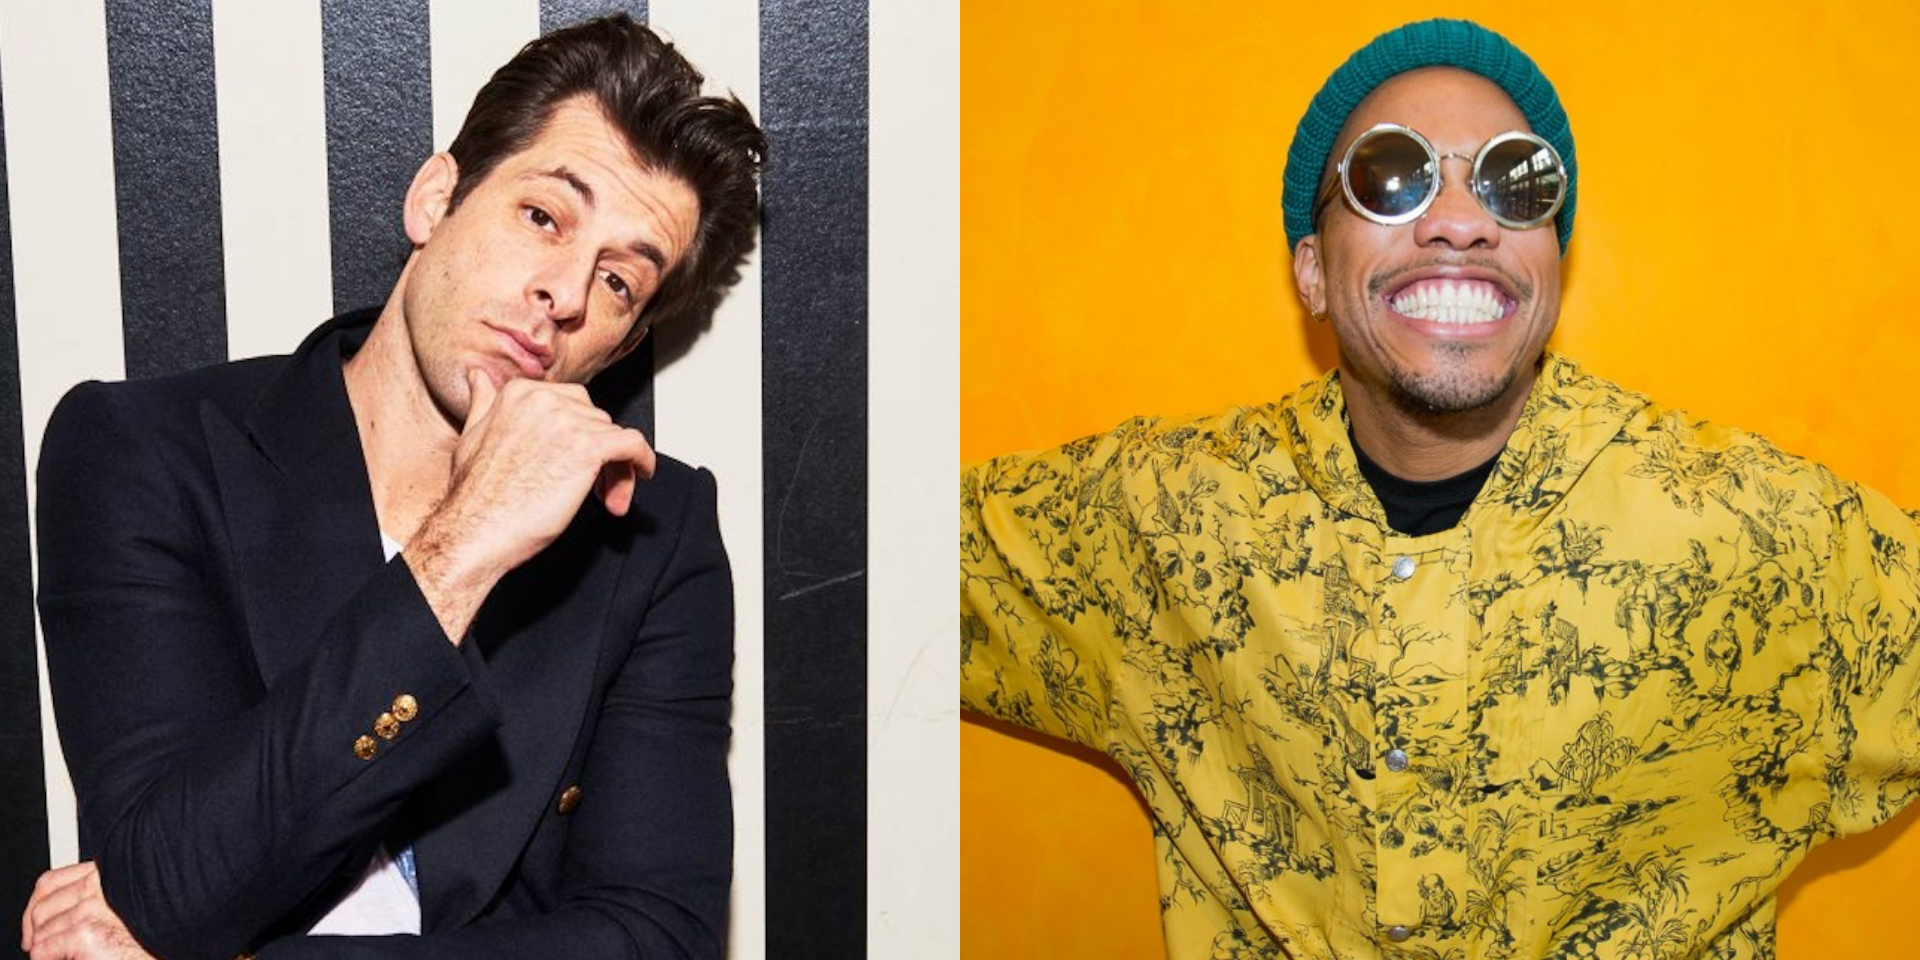 Mark Ronson and Anderson .Paak release new song 'Then There Were Two'